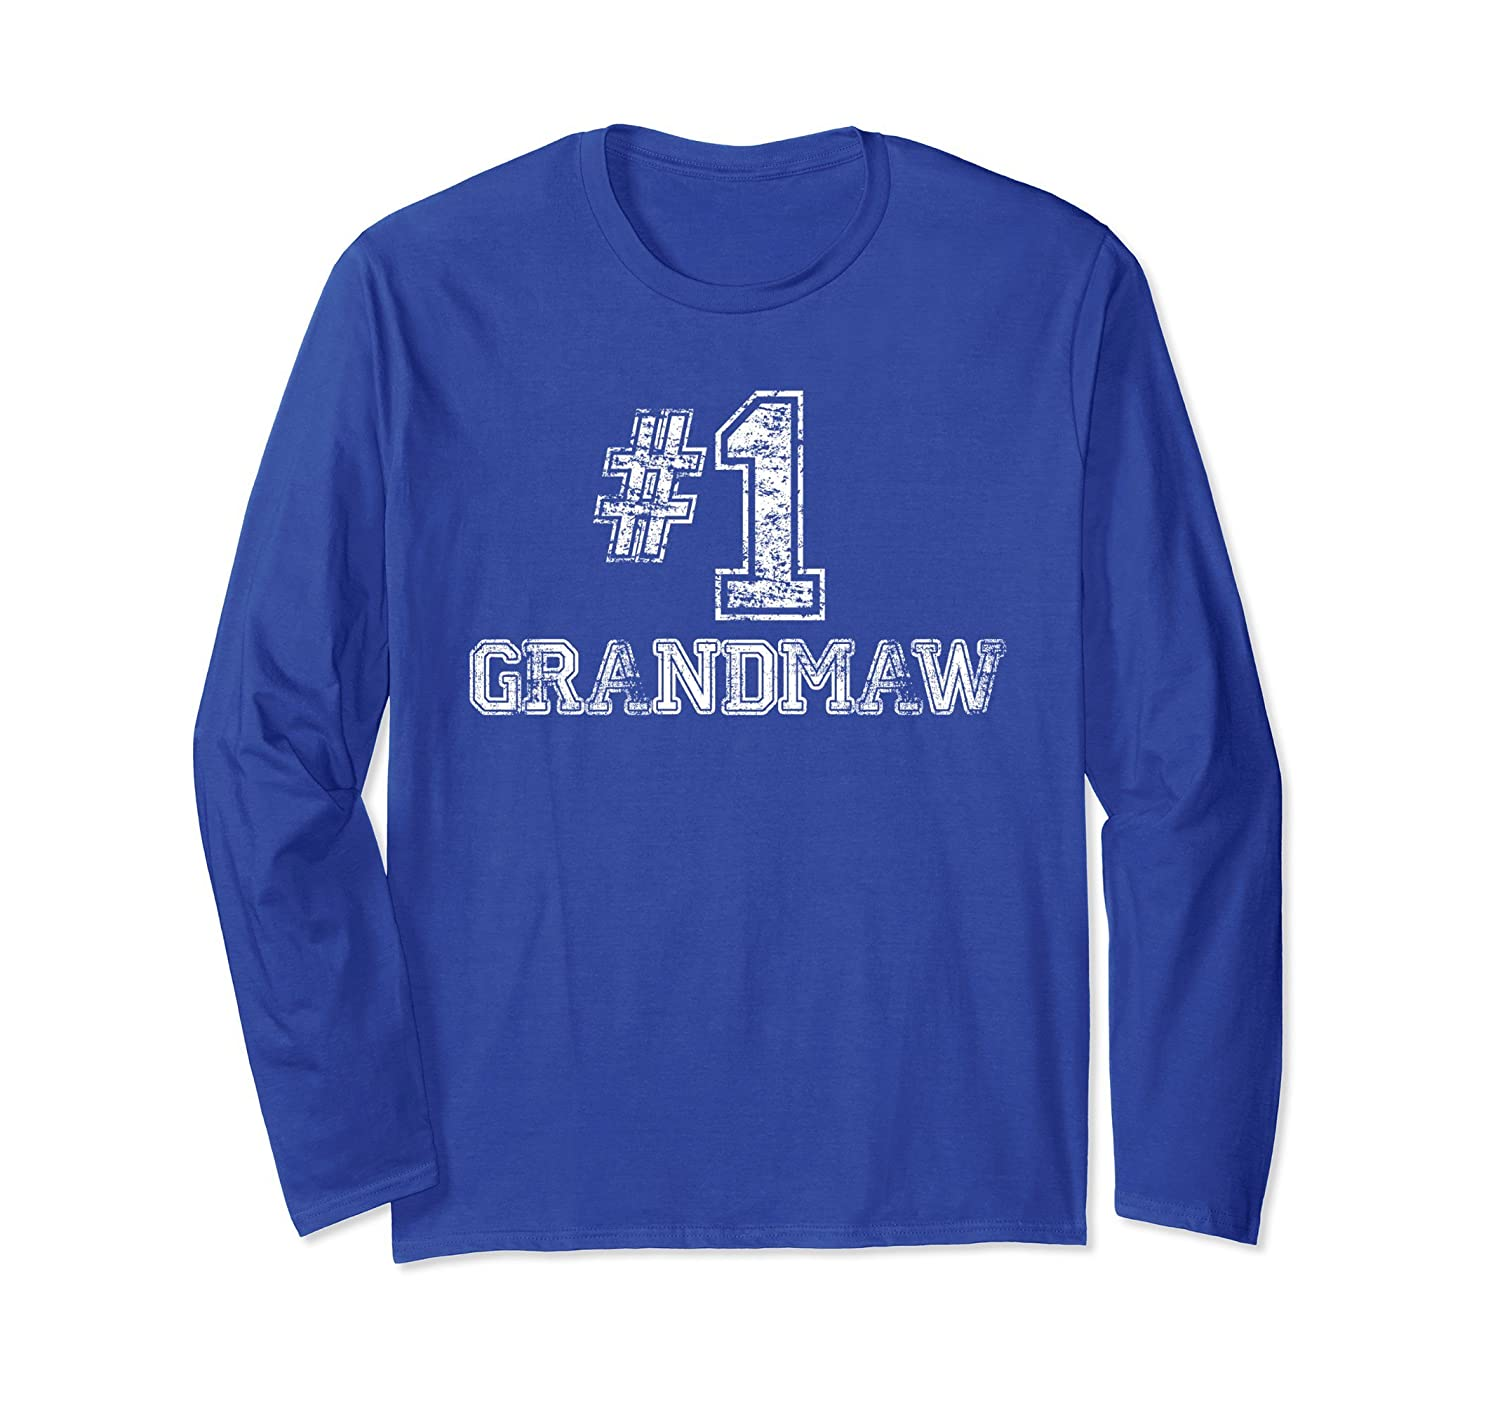 #1 GrandMaw T Shirt - Number One Sports Jersey Gift Tee-alottee gift